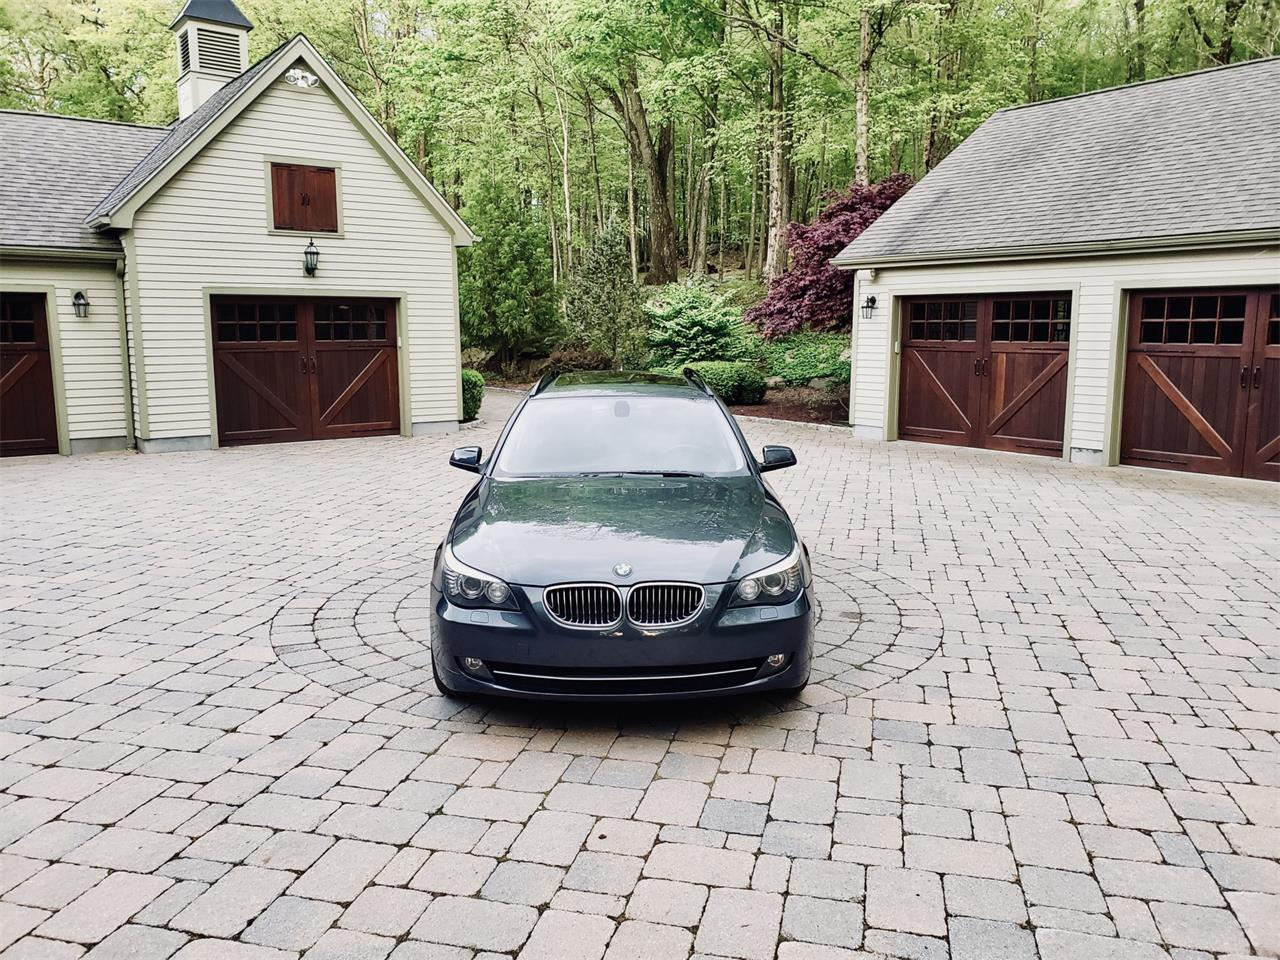 2010 BMW 5 Series (CC-1218883) for sale in North Salem, New York